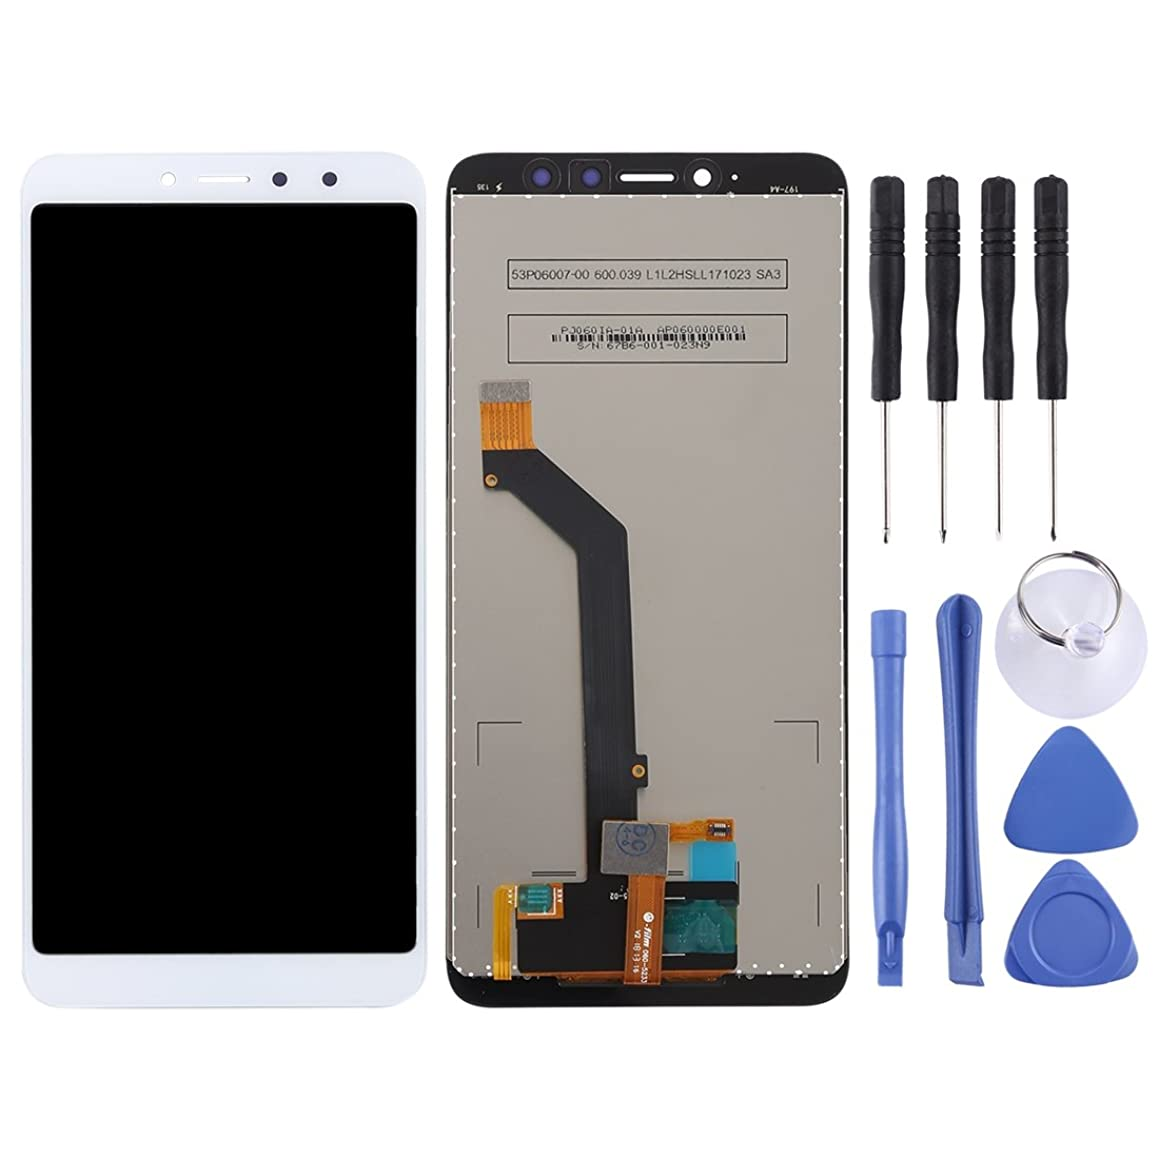 Jiangym Mobile Phone LCD Screen LCD Screen and Digitizer Full Assembly for Xiaomi Redmi S2 (Black) LCD Screen (Color : White)